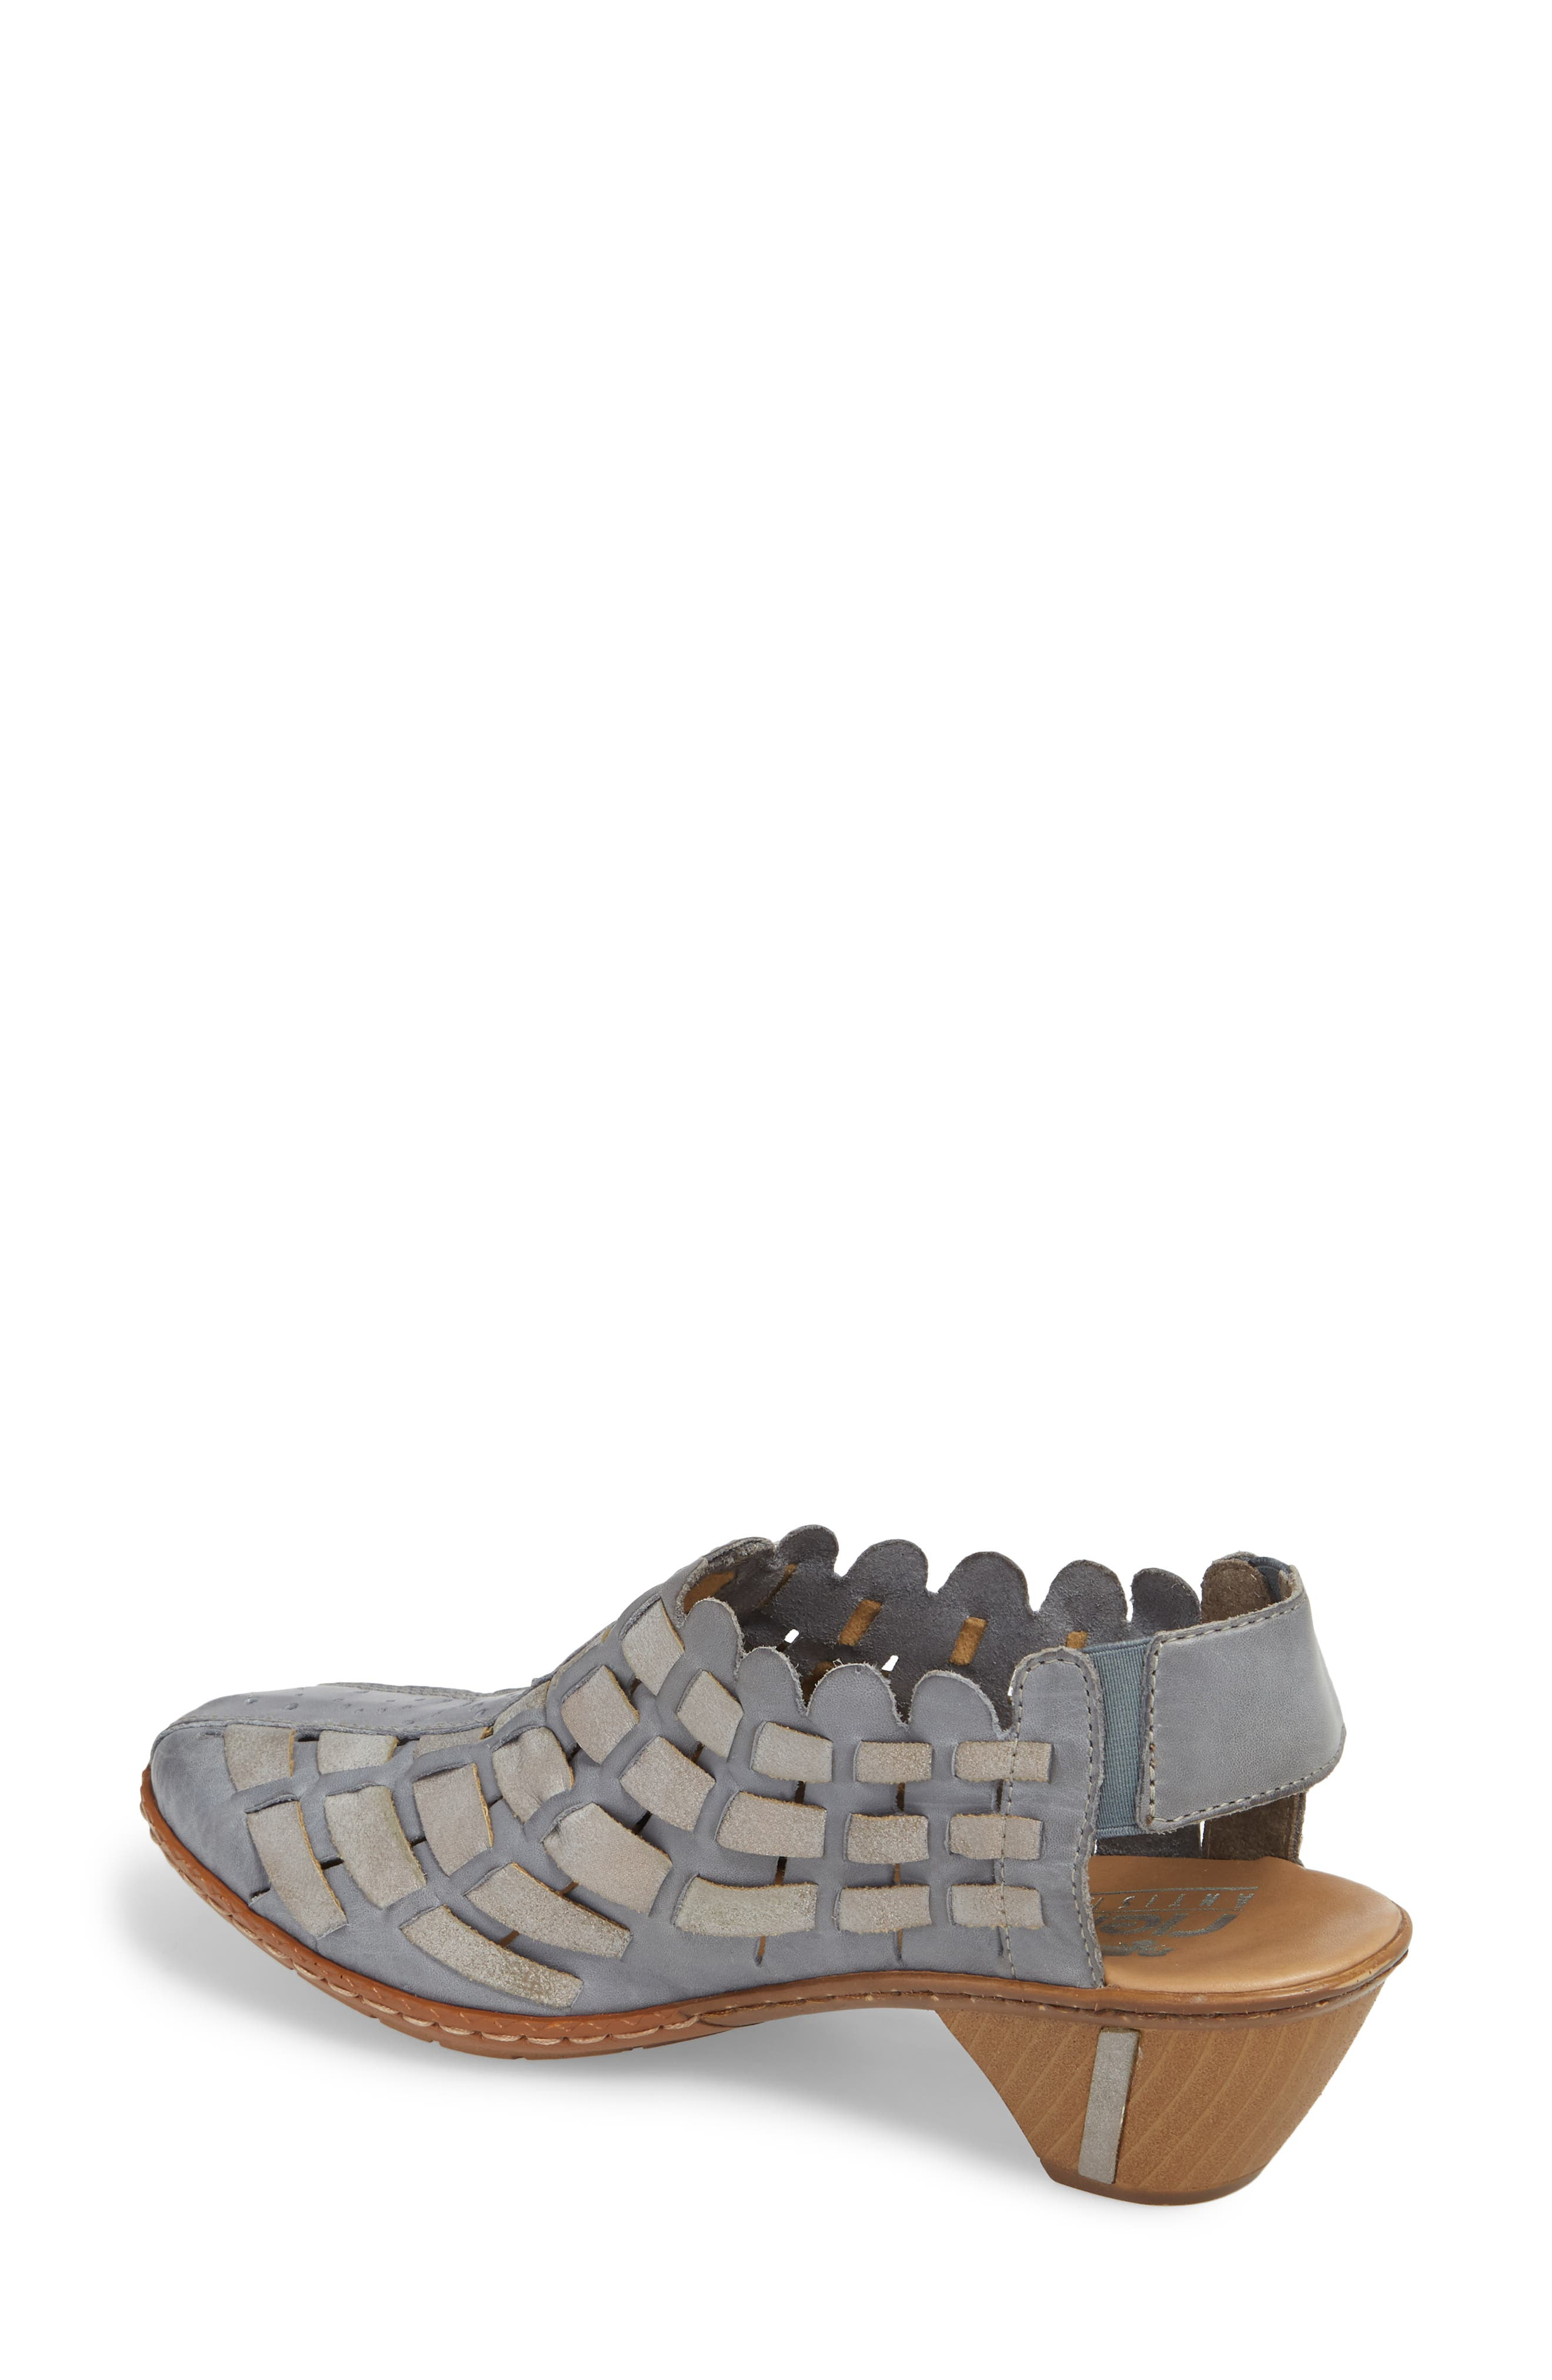 'Sina' Woven Bootie,                             Alternate thumbnail 2, color,                             Azur Grey Leather